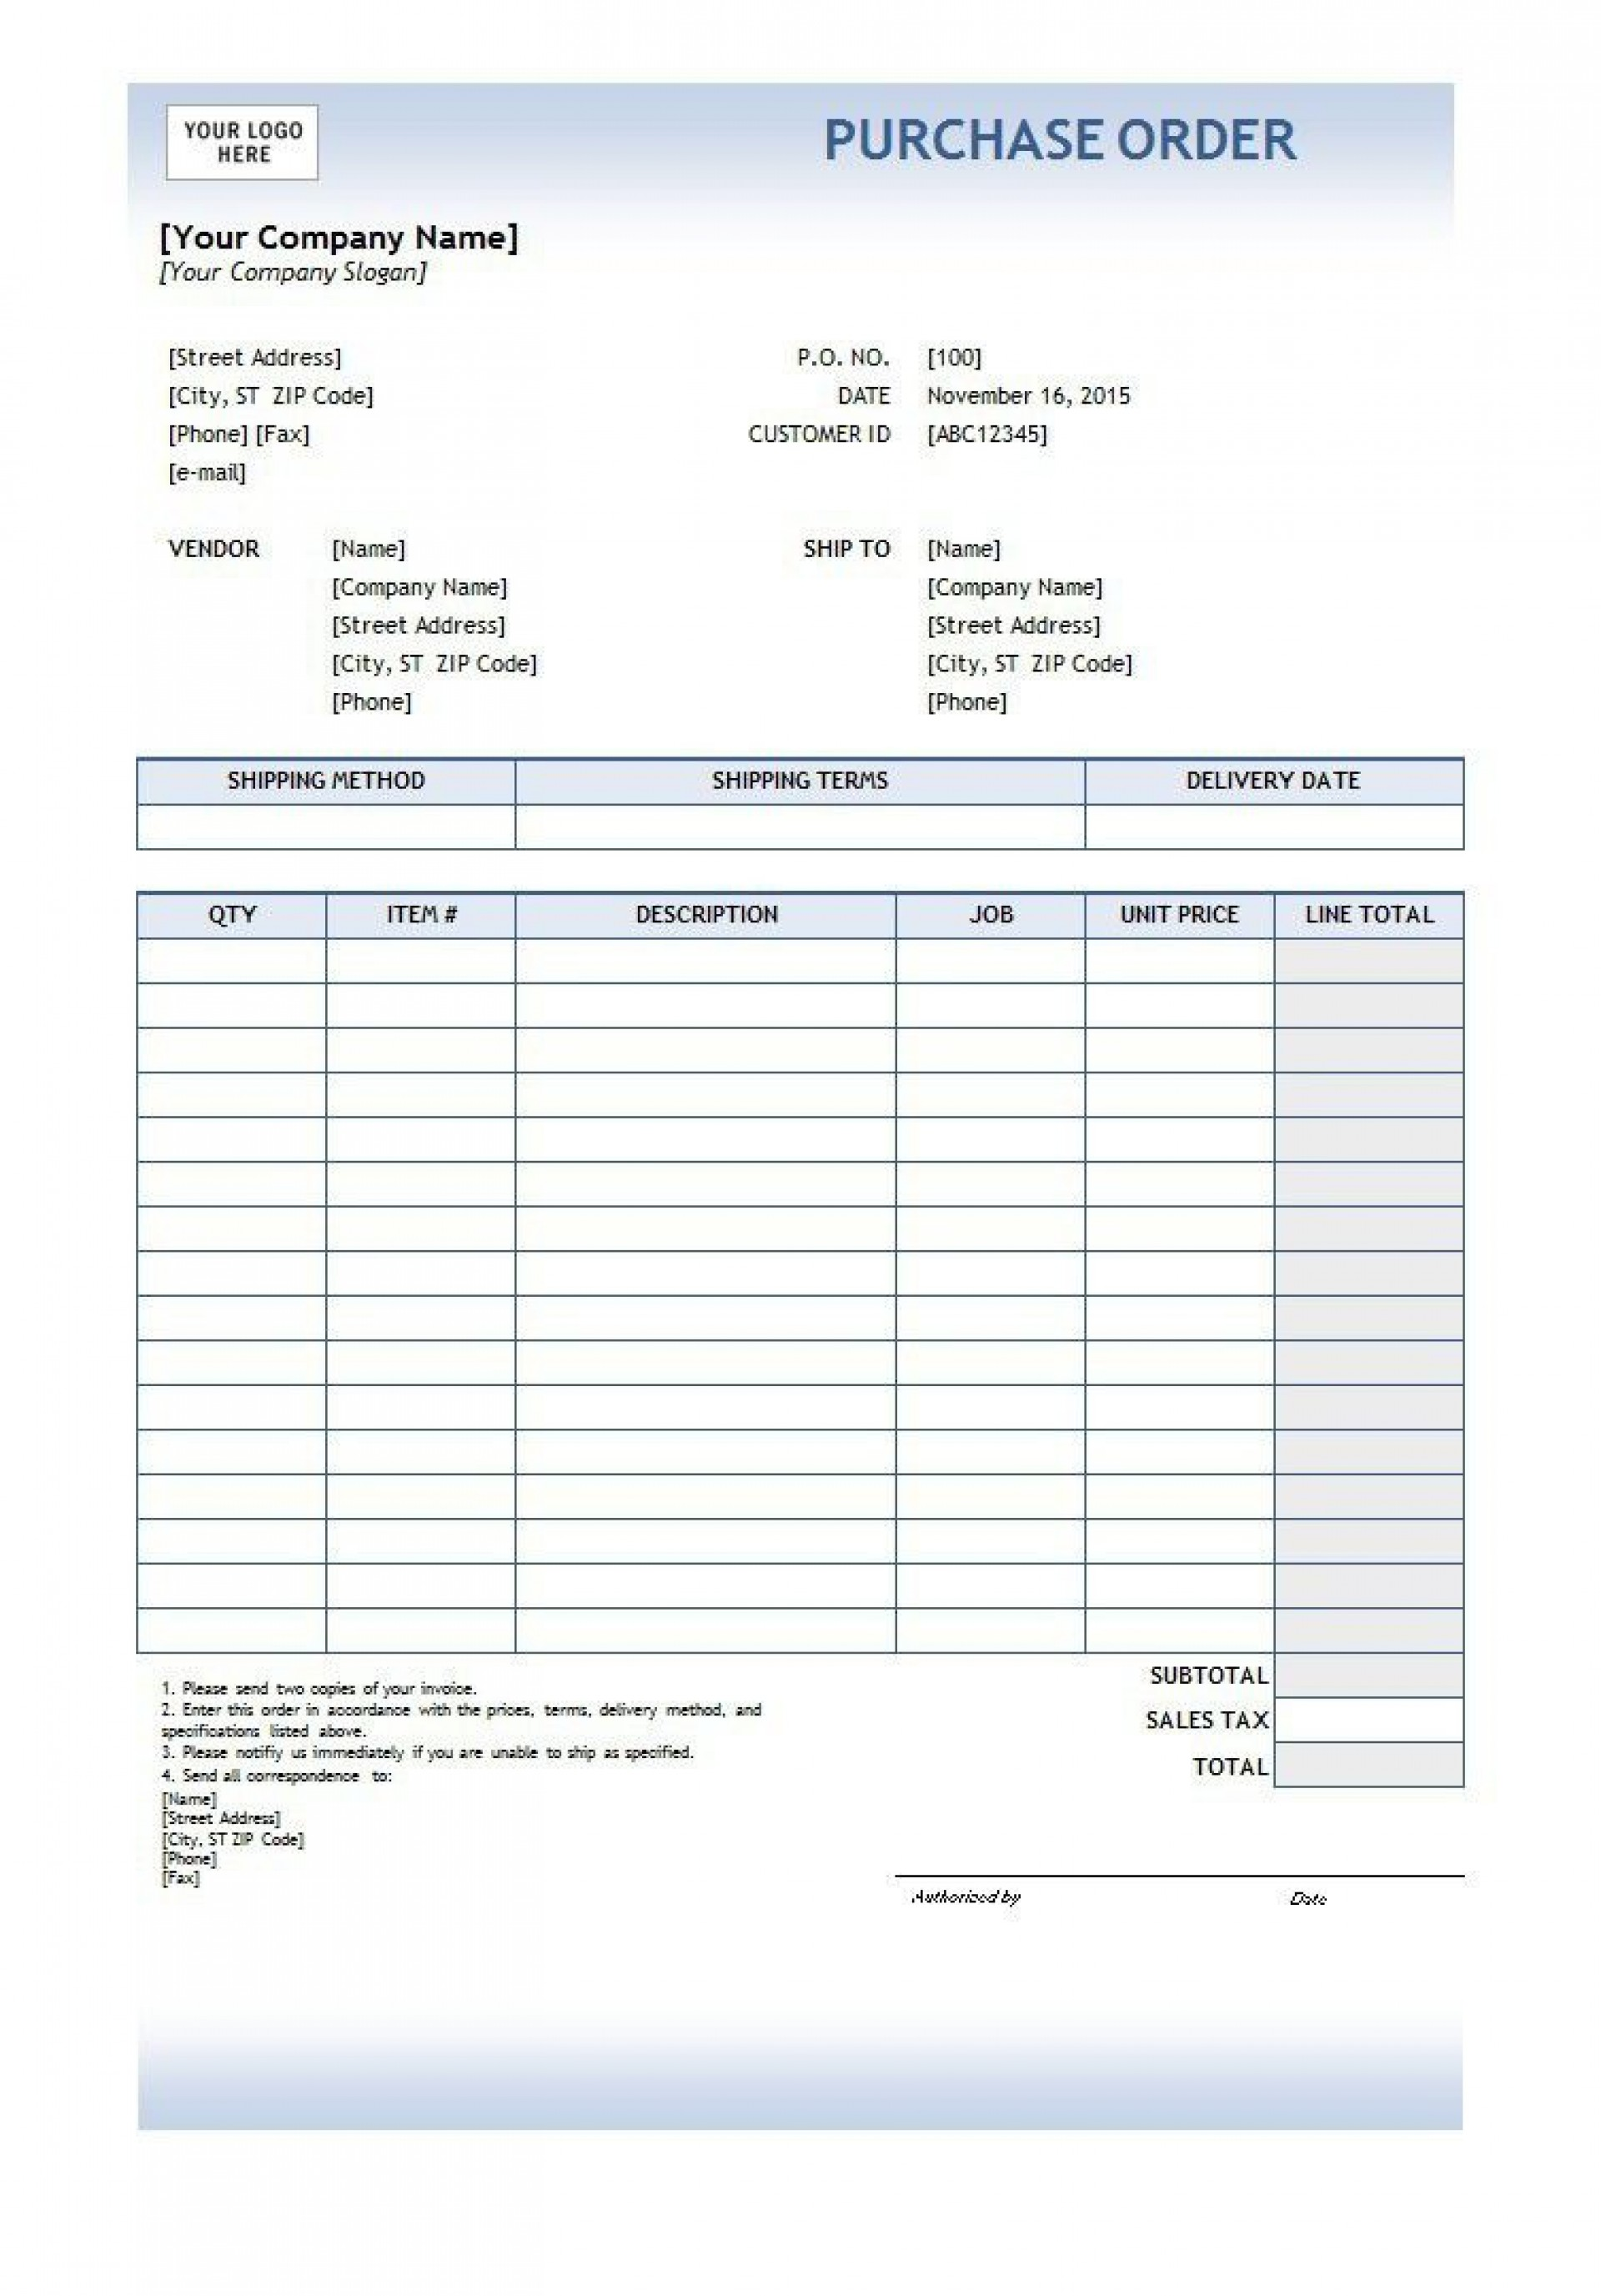 002 Best Free Purchase Order Template Word Image  Microsoft Download1920